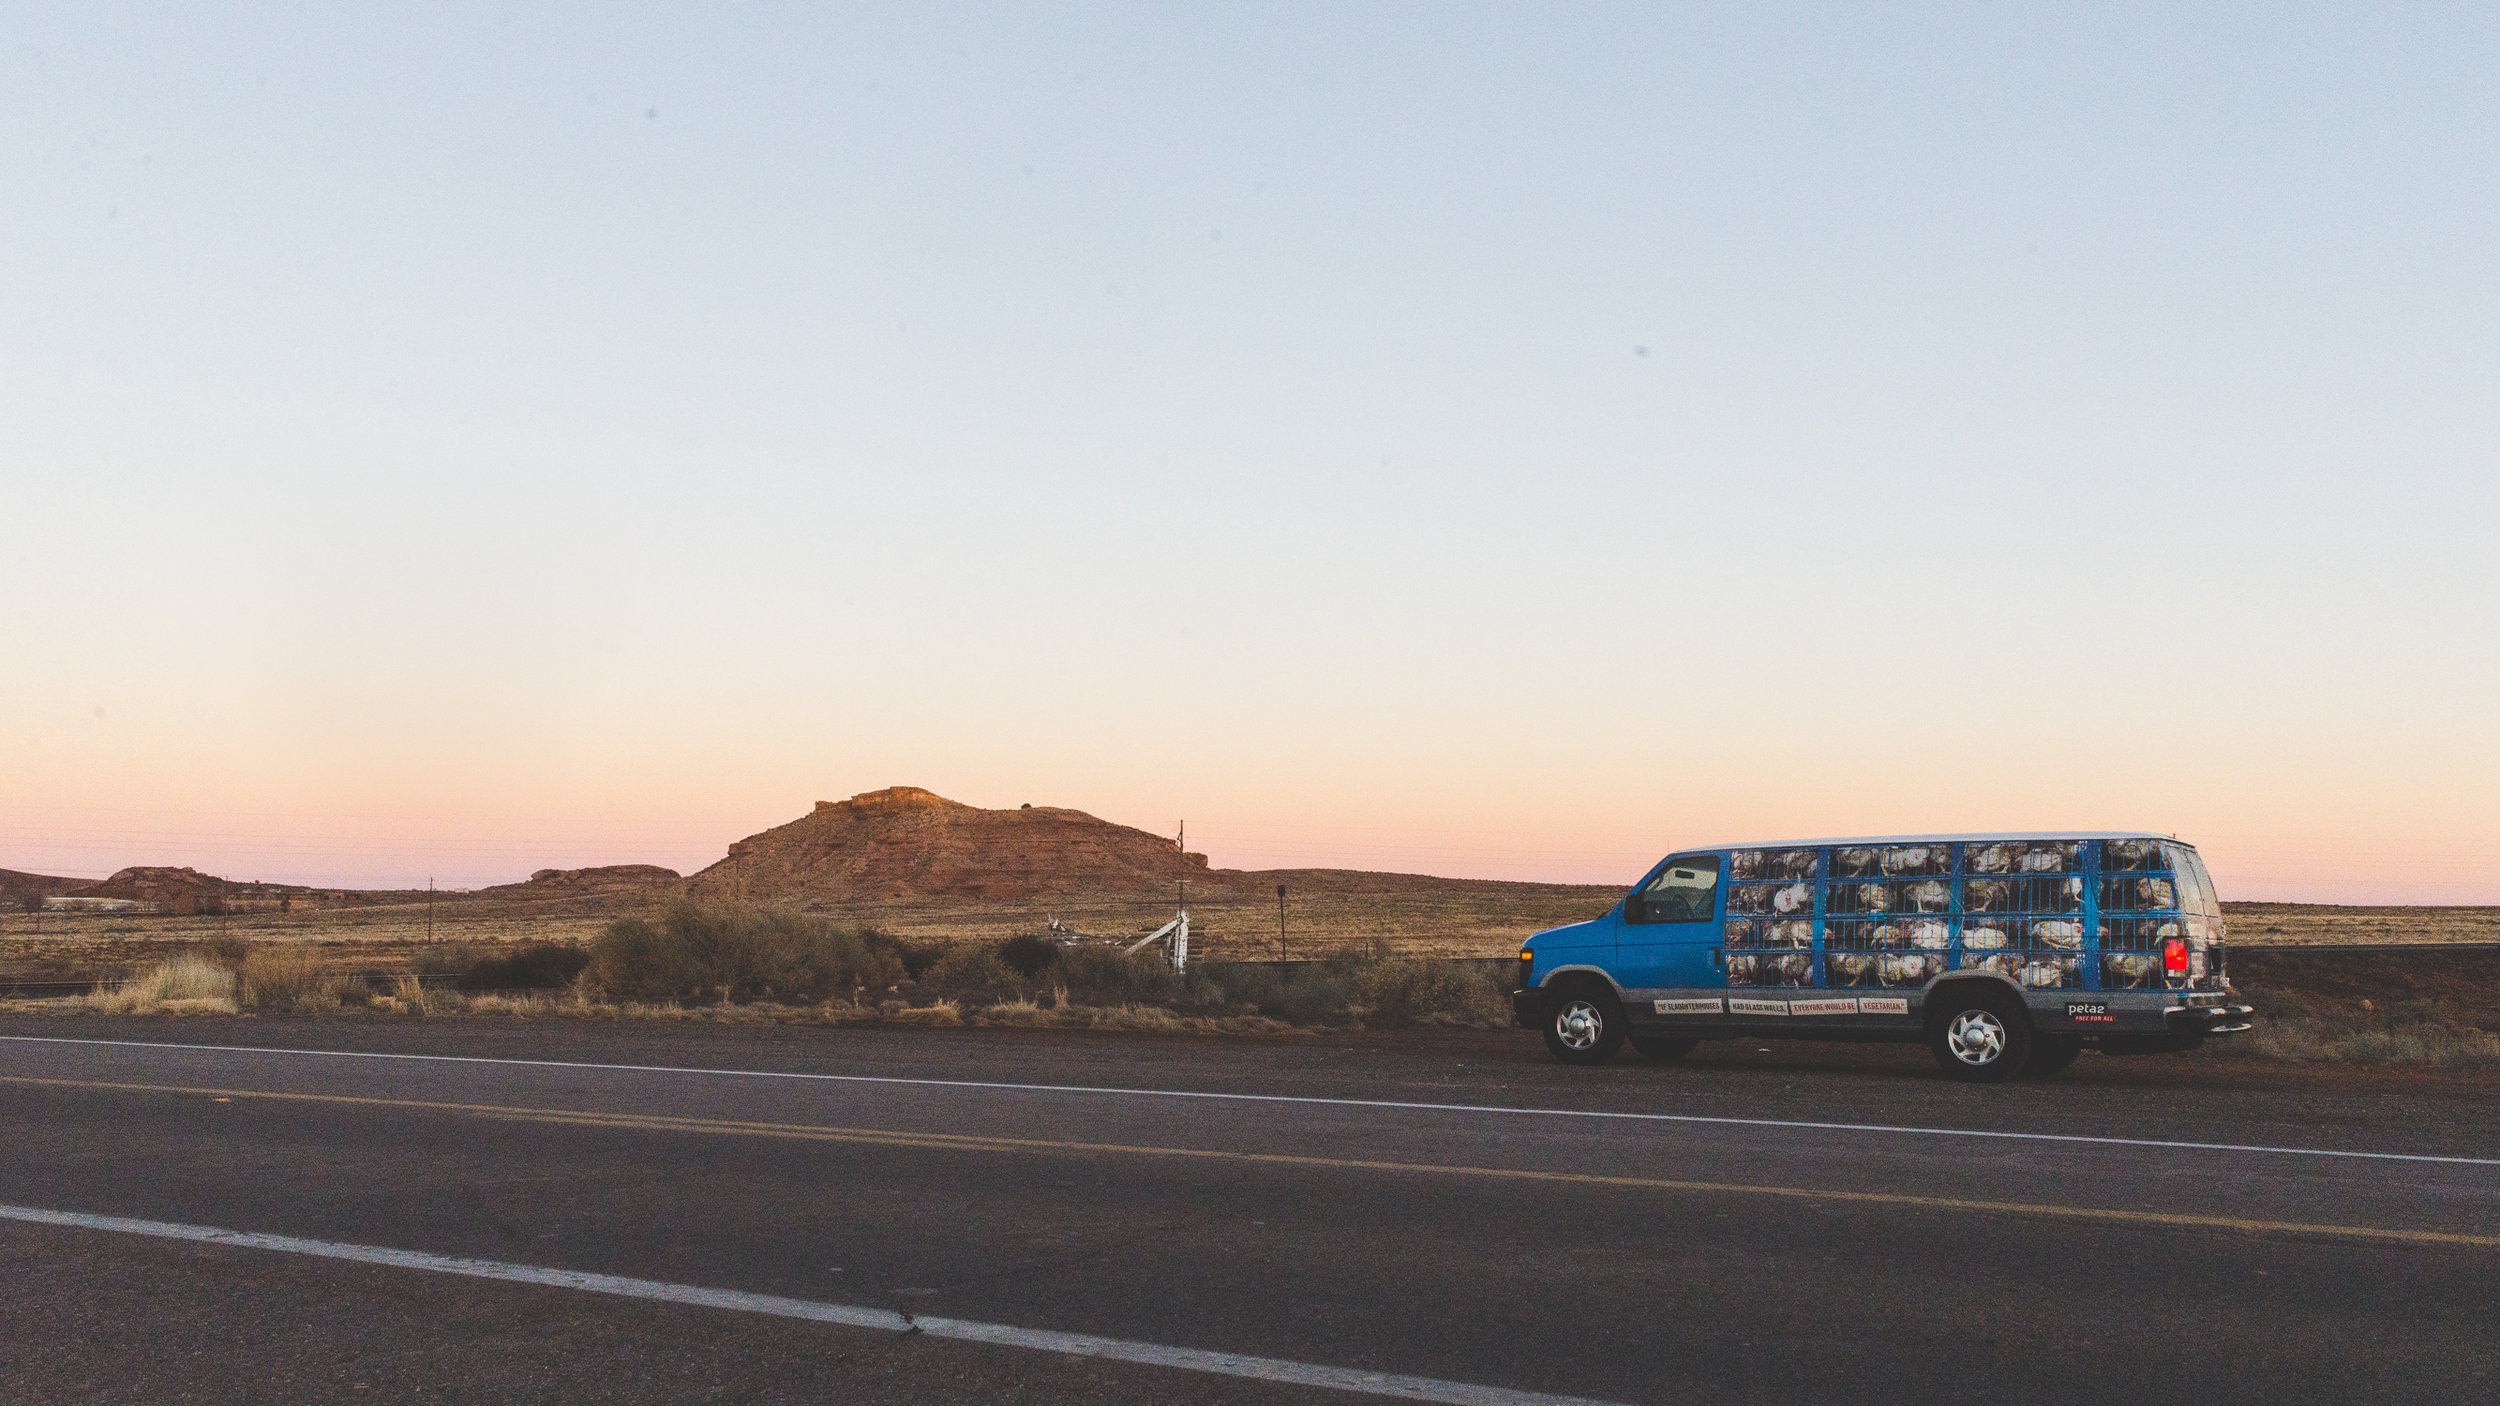 Our van in front of a sky that looks like watercolors. / 2/9/16 / Holbrook, AZ